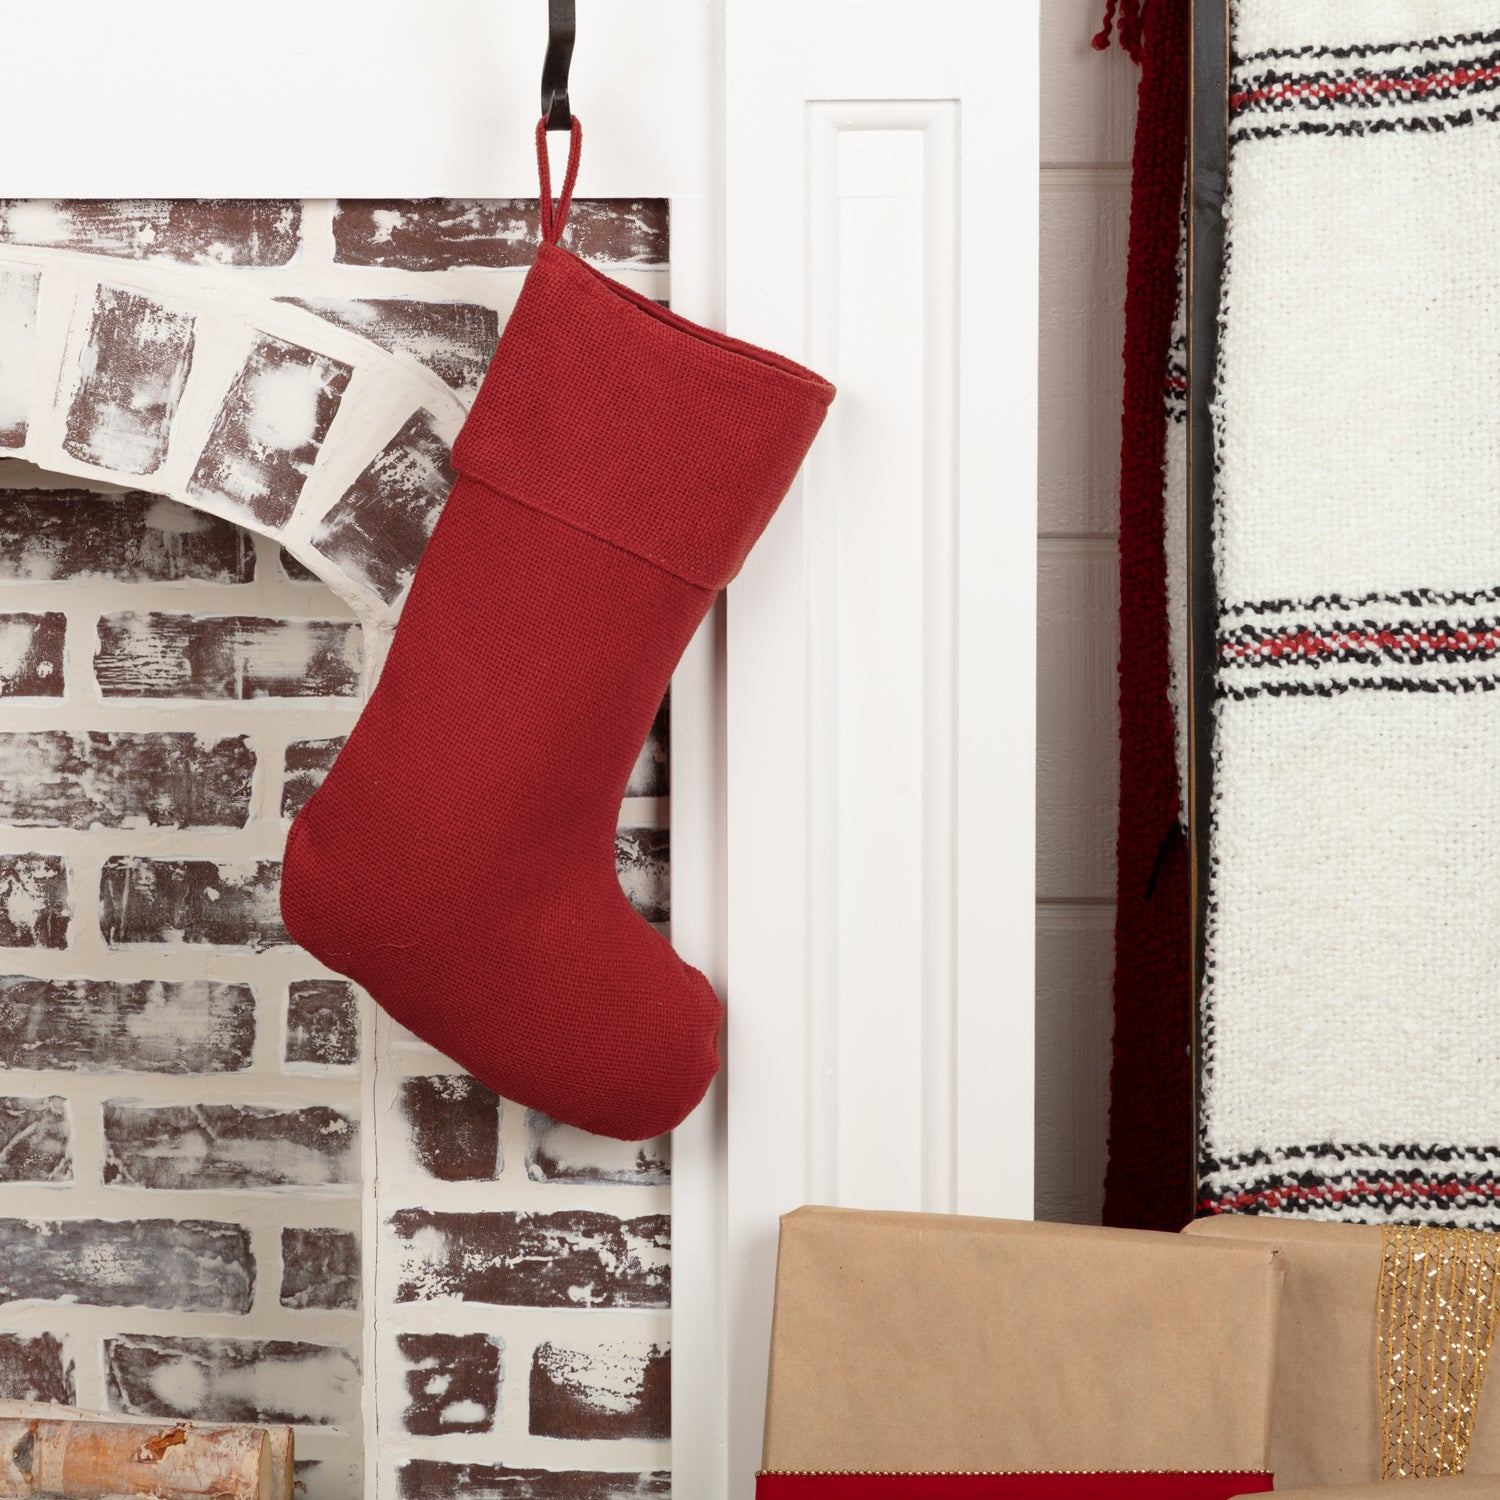 Festive Red Burlap Stocking 11x15 - Woodrol